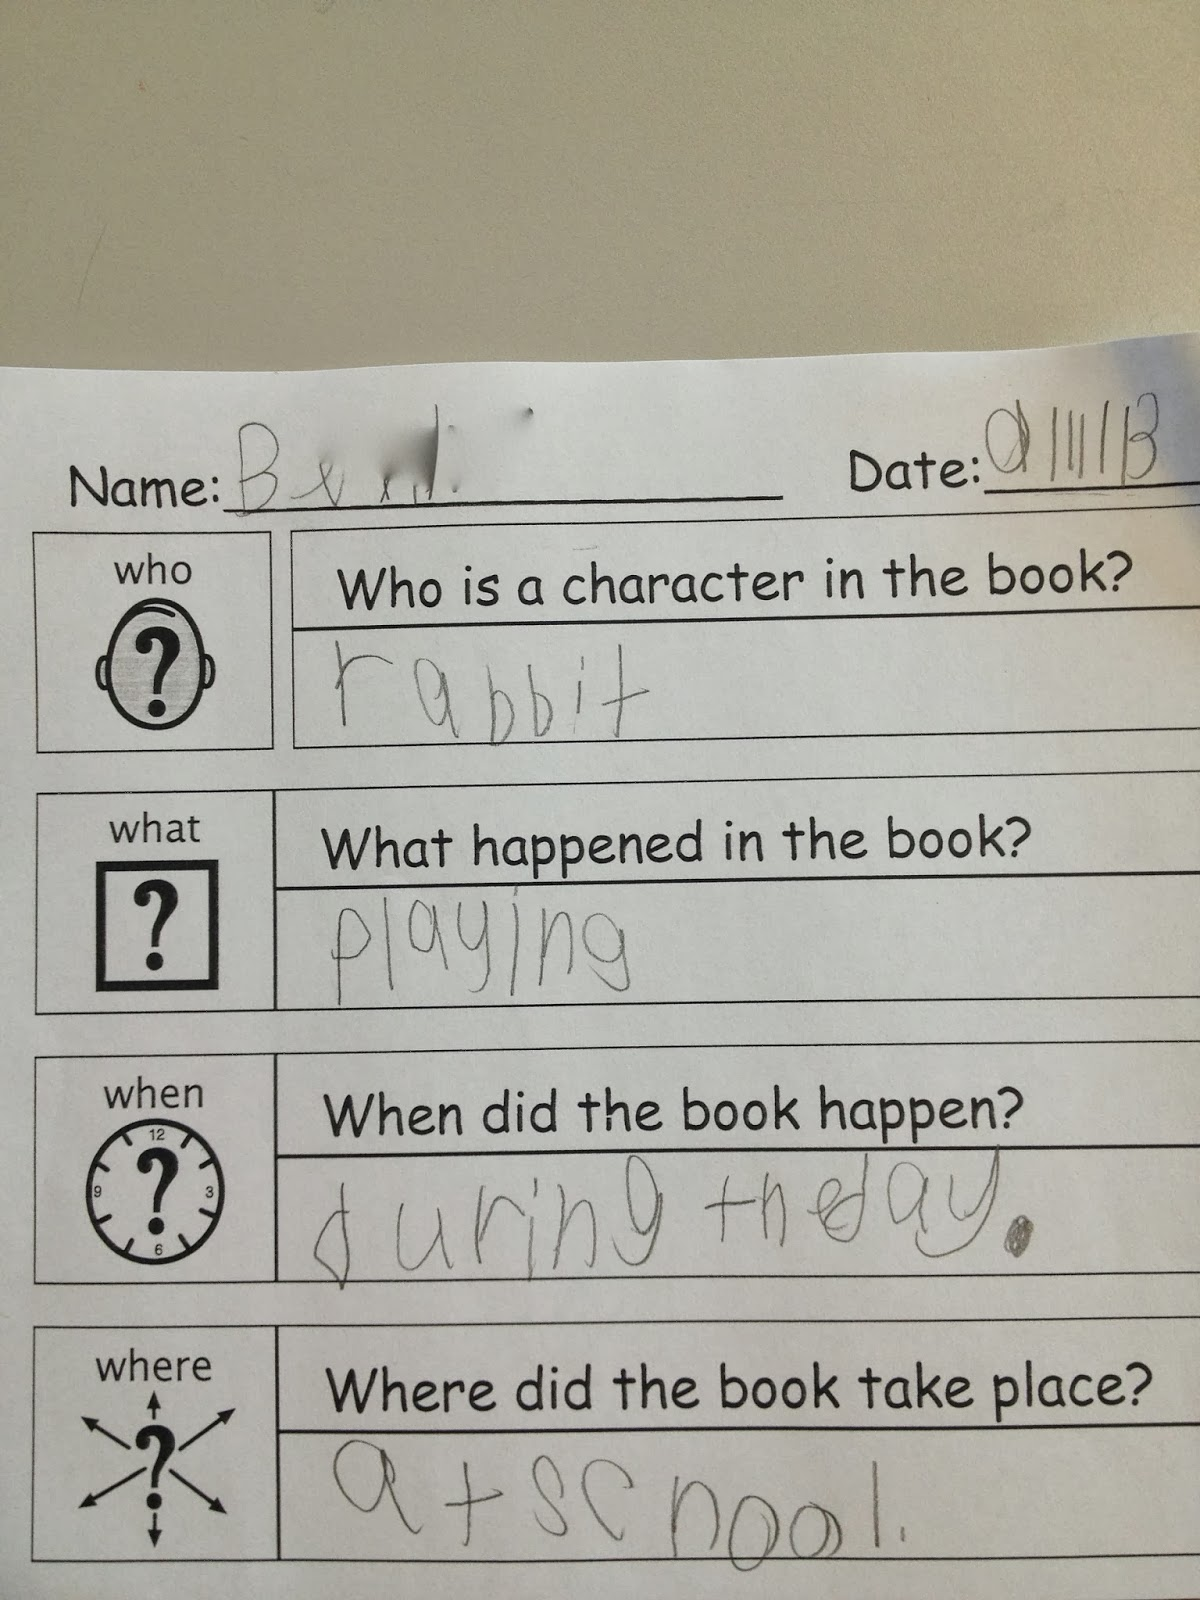 autism tank wh questions who and where we also used our visual to answer when and what questions about the story here is a link to this wh worksheet bie